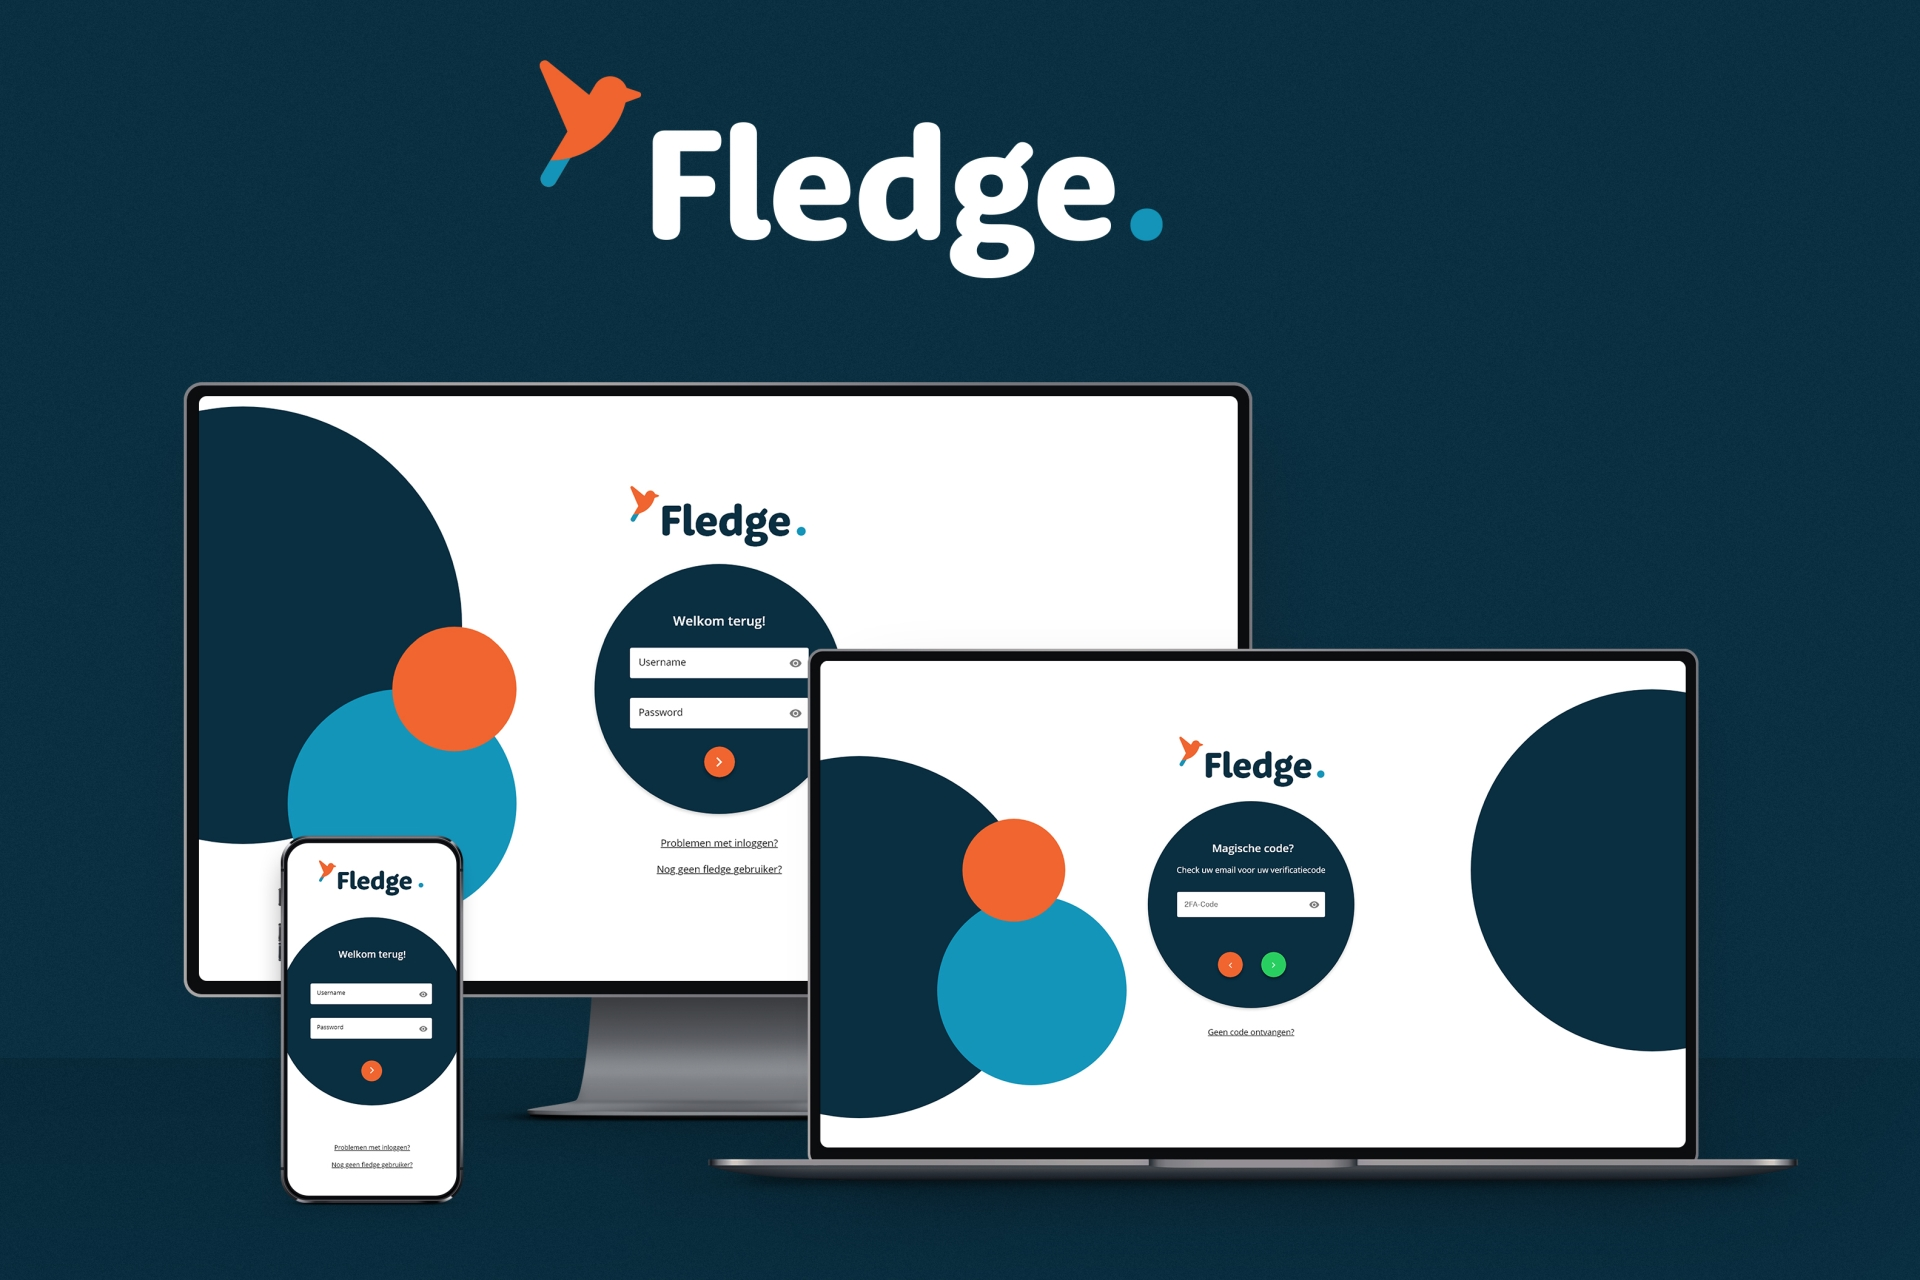 fledge-webaccess